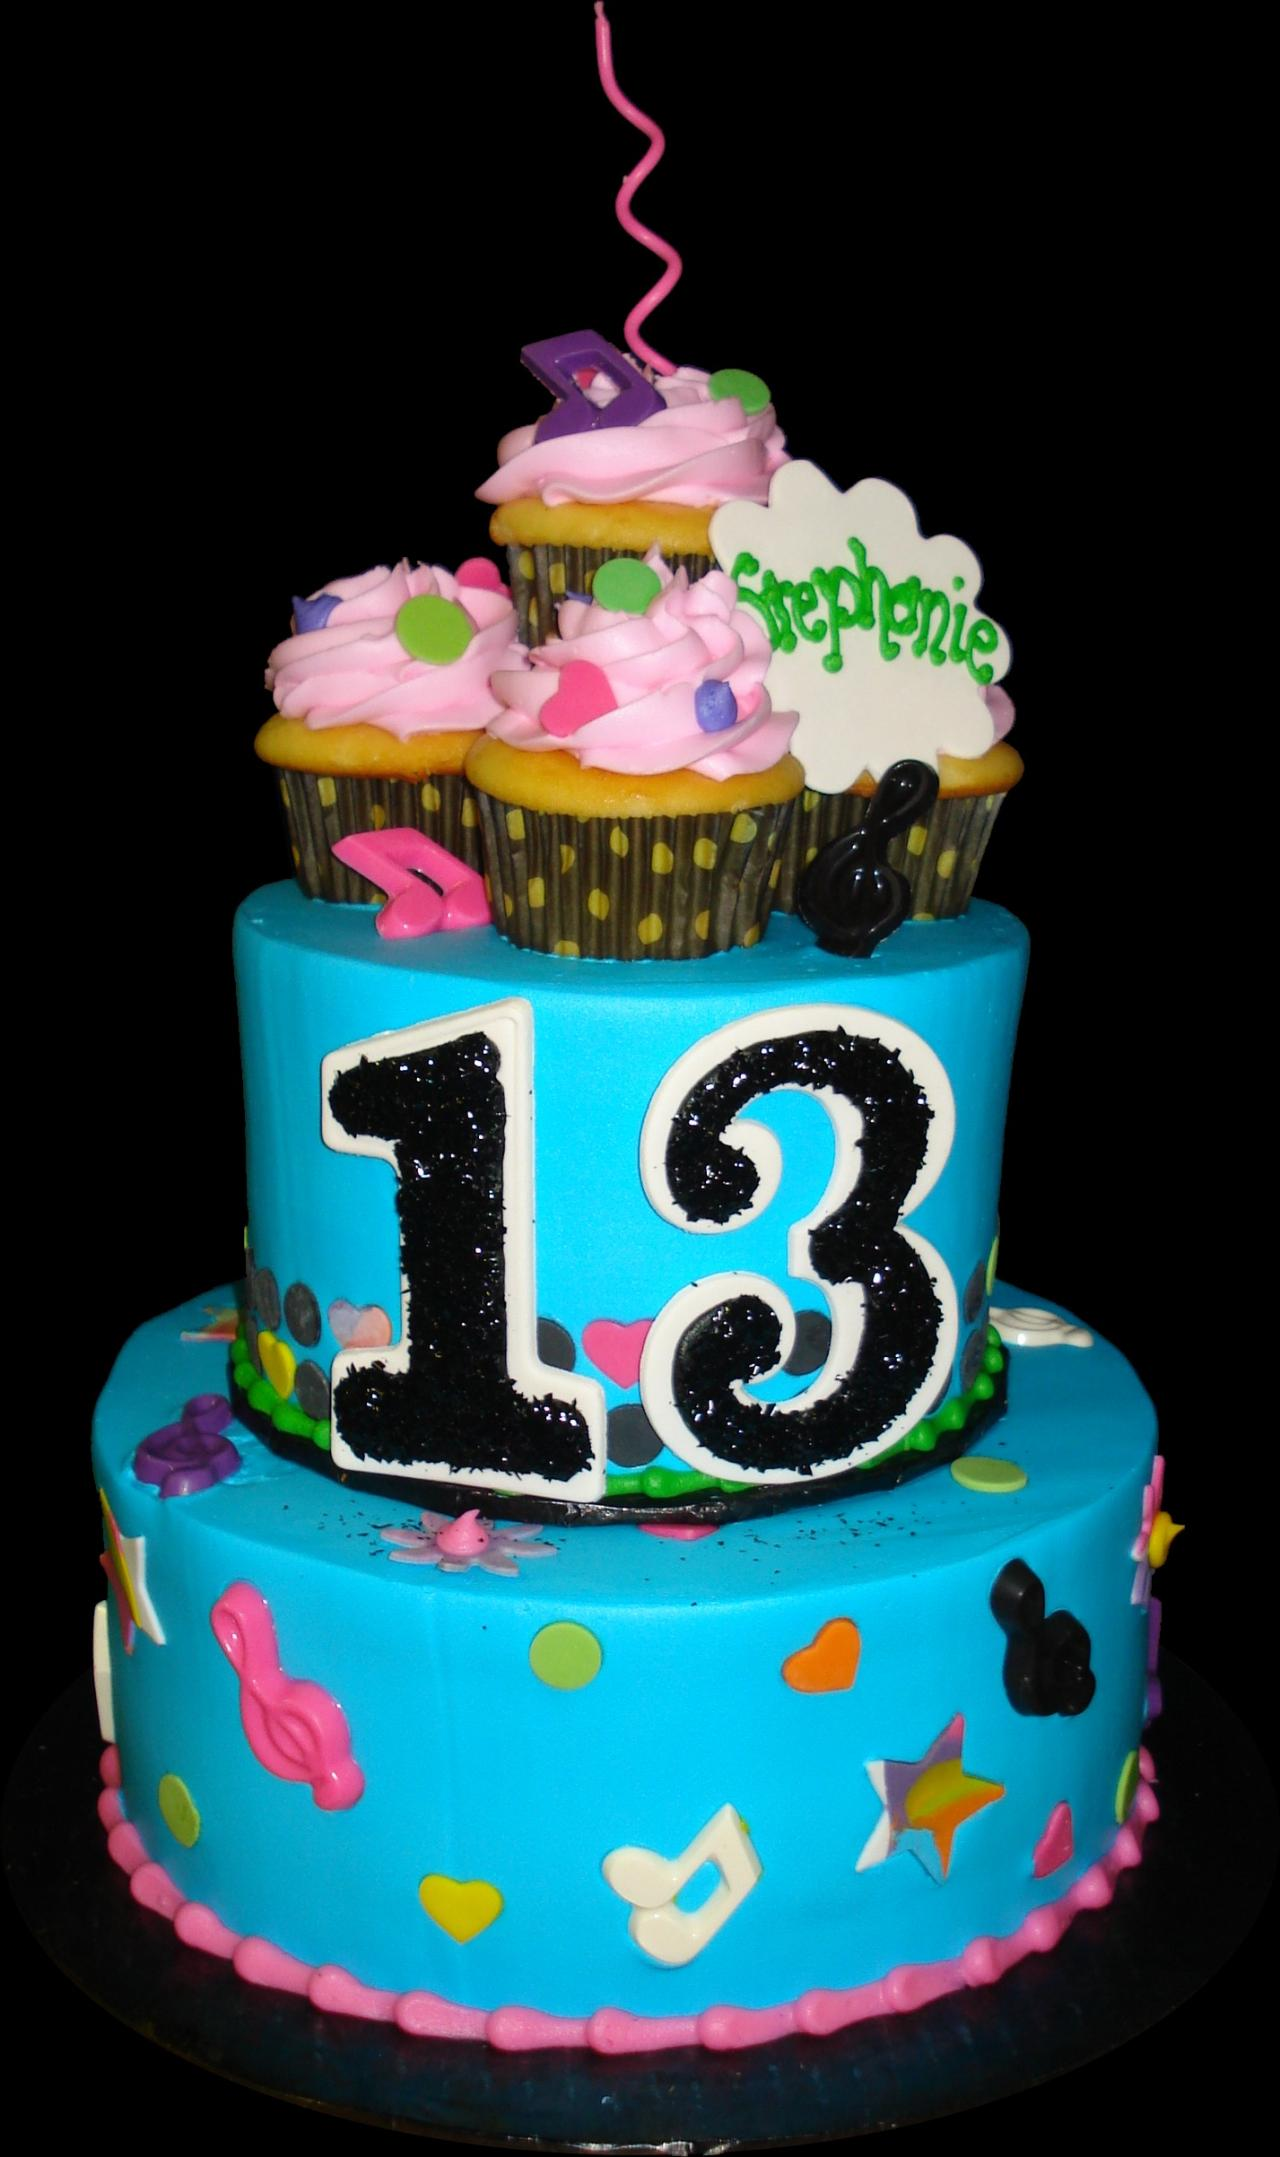 Cake Ideas For A 13th Birthday Party : All Cakes Sugar Showcase